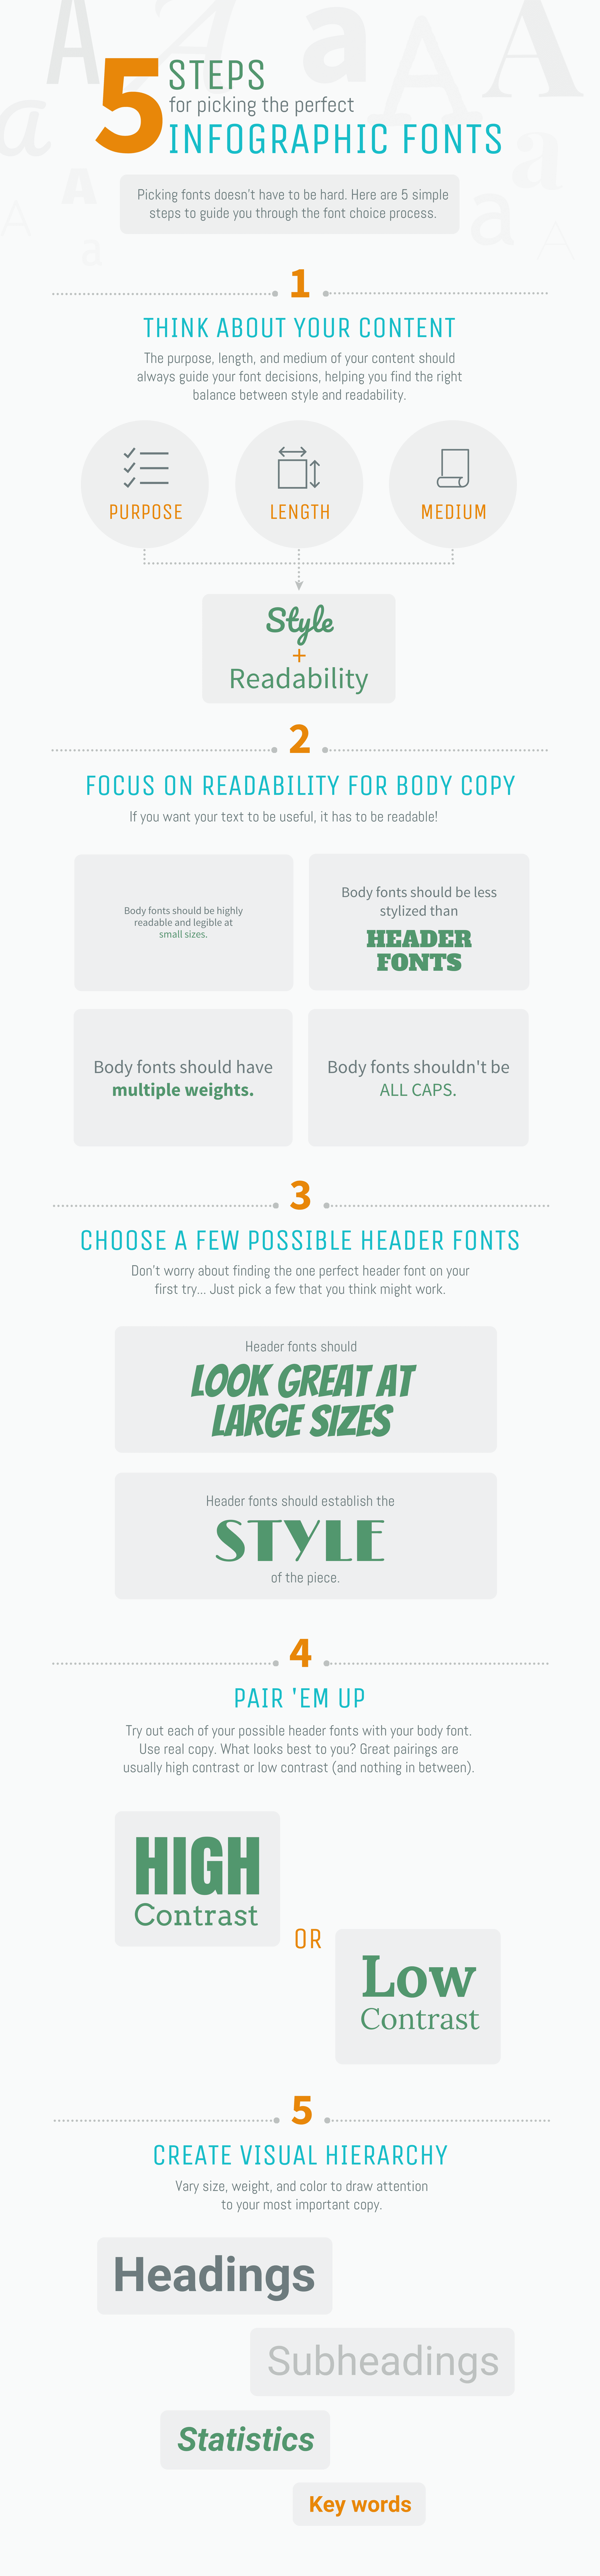 Infographic fonts 5 steps to pick the best font